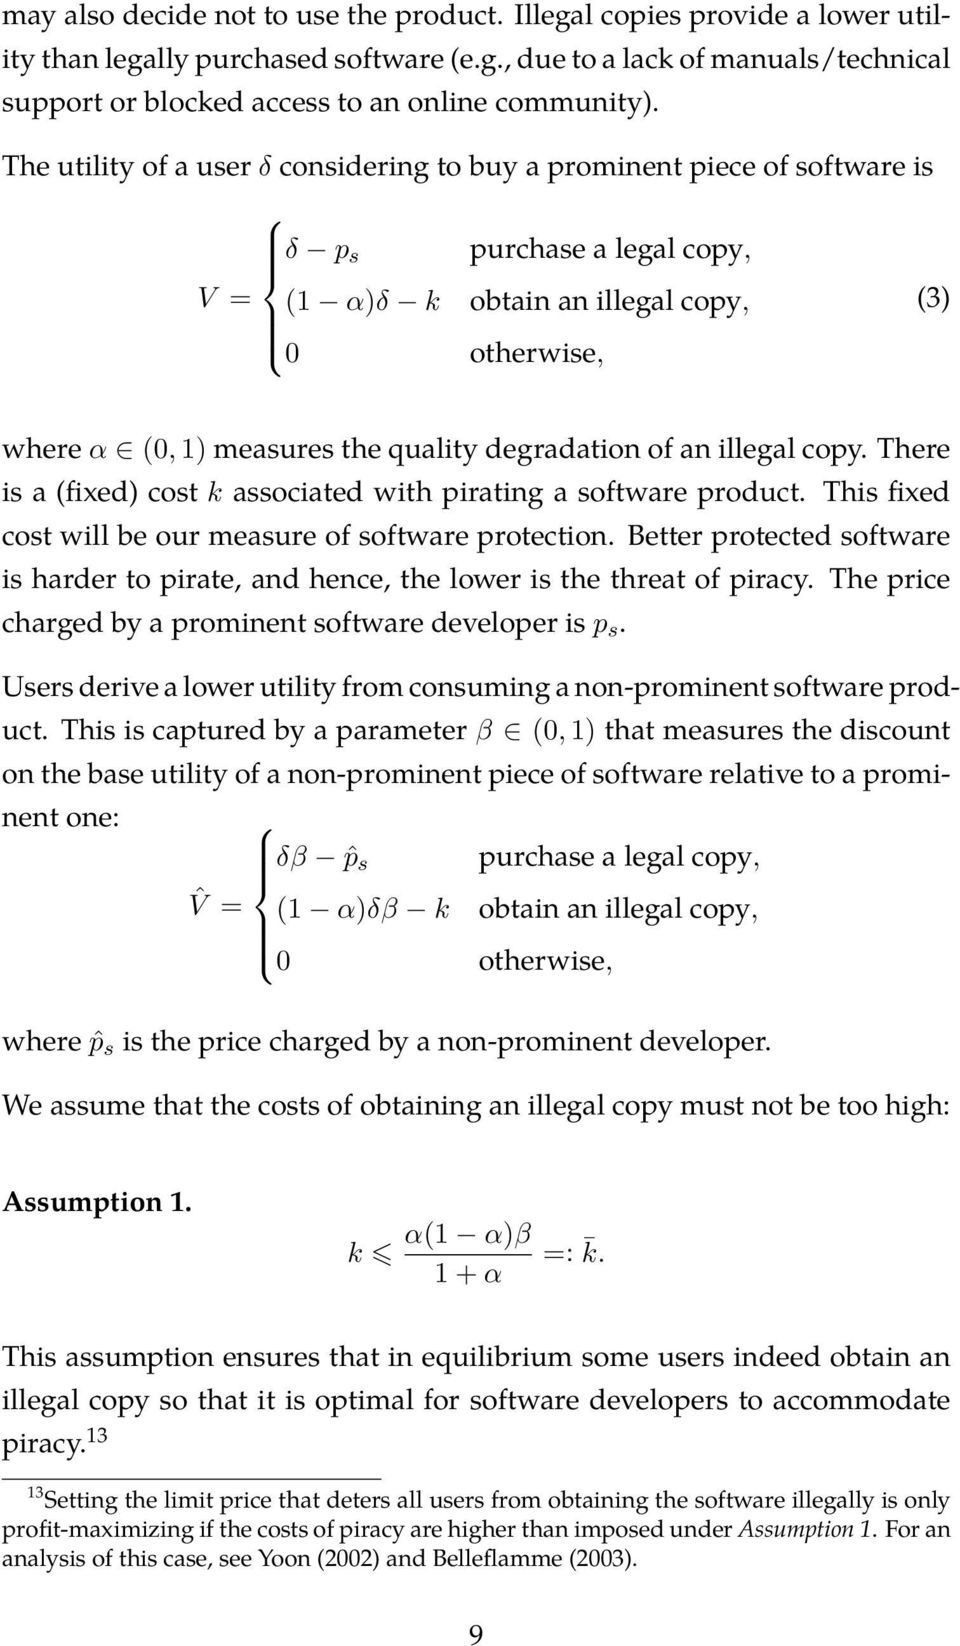 degradation of an illegal copy. There is a (fixed) cost k associated with pirating a software product. This fixed cost will be our measure of software protection.